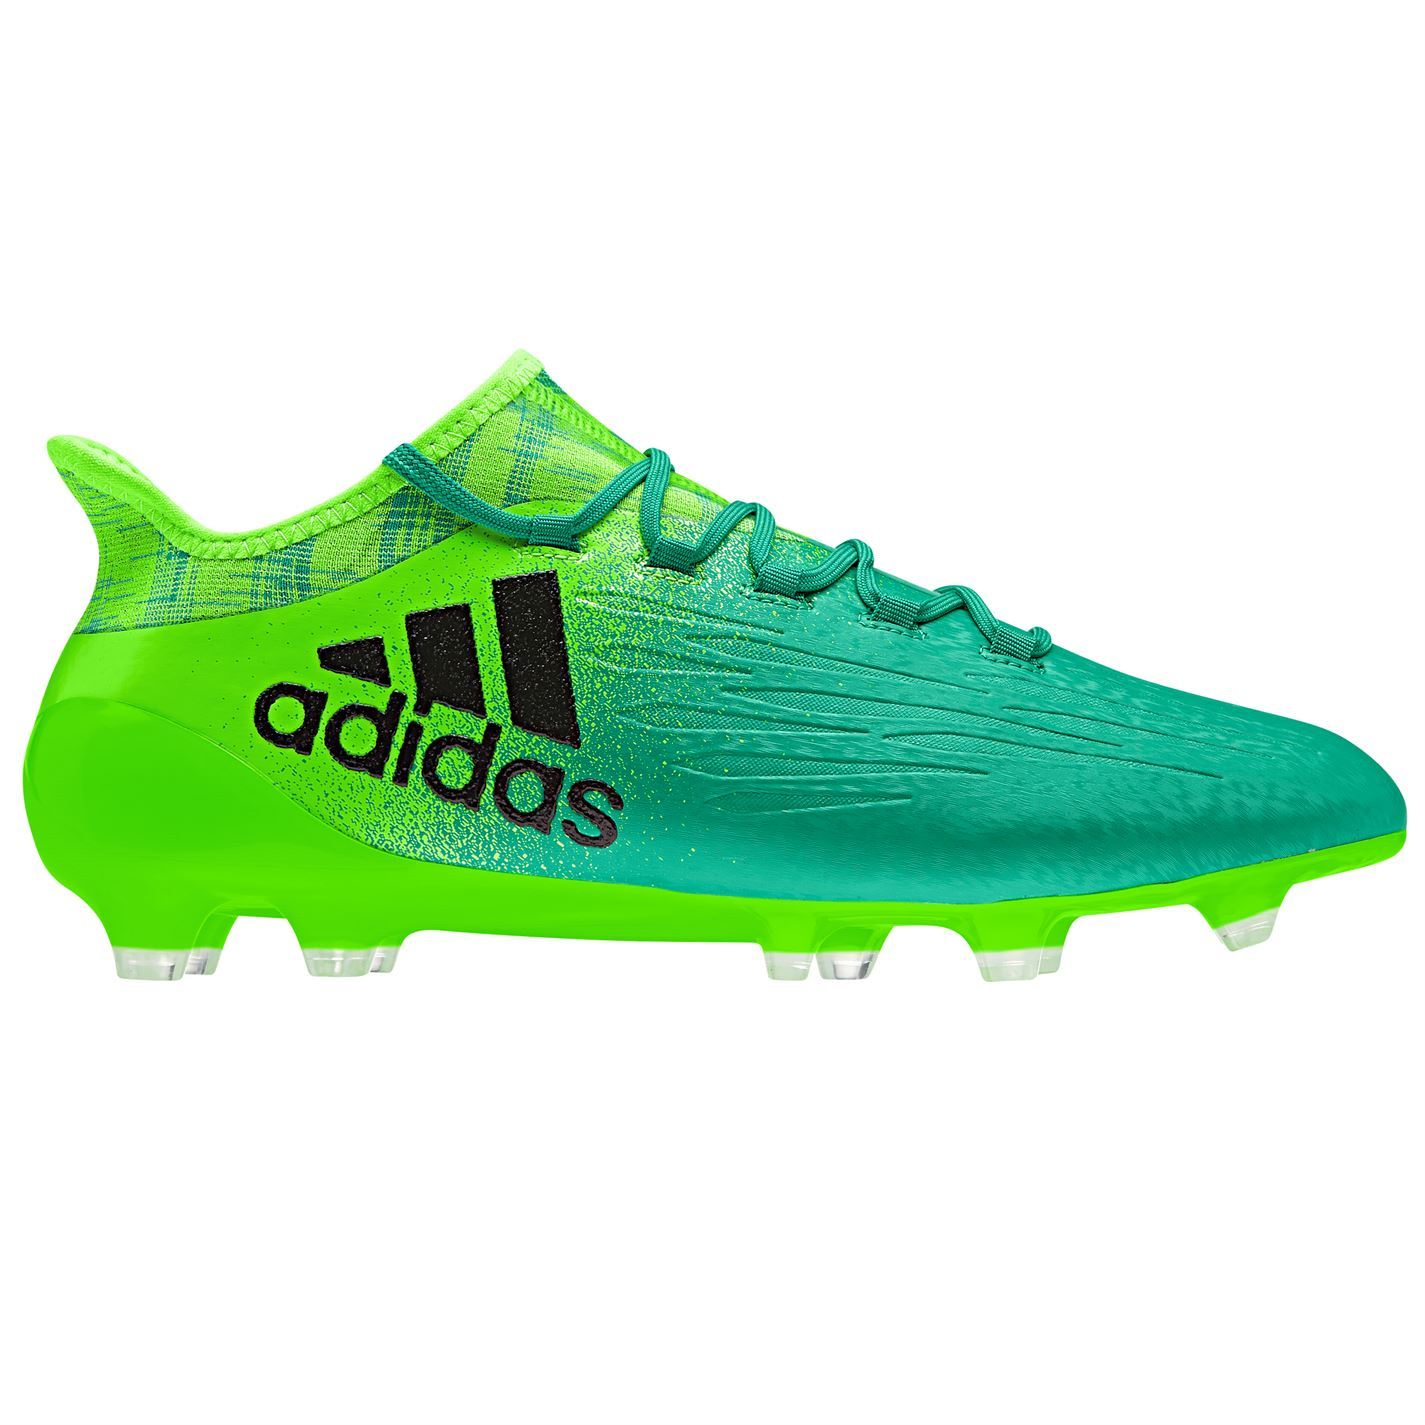 super popular 430c8 10df1 adidas X 16.1 FG Firm Ground Football Boots Mens Green Black Soccer Shoes  Cleats